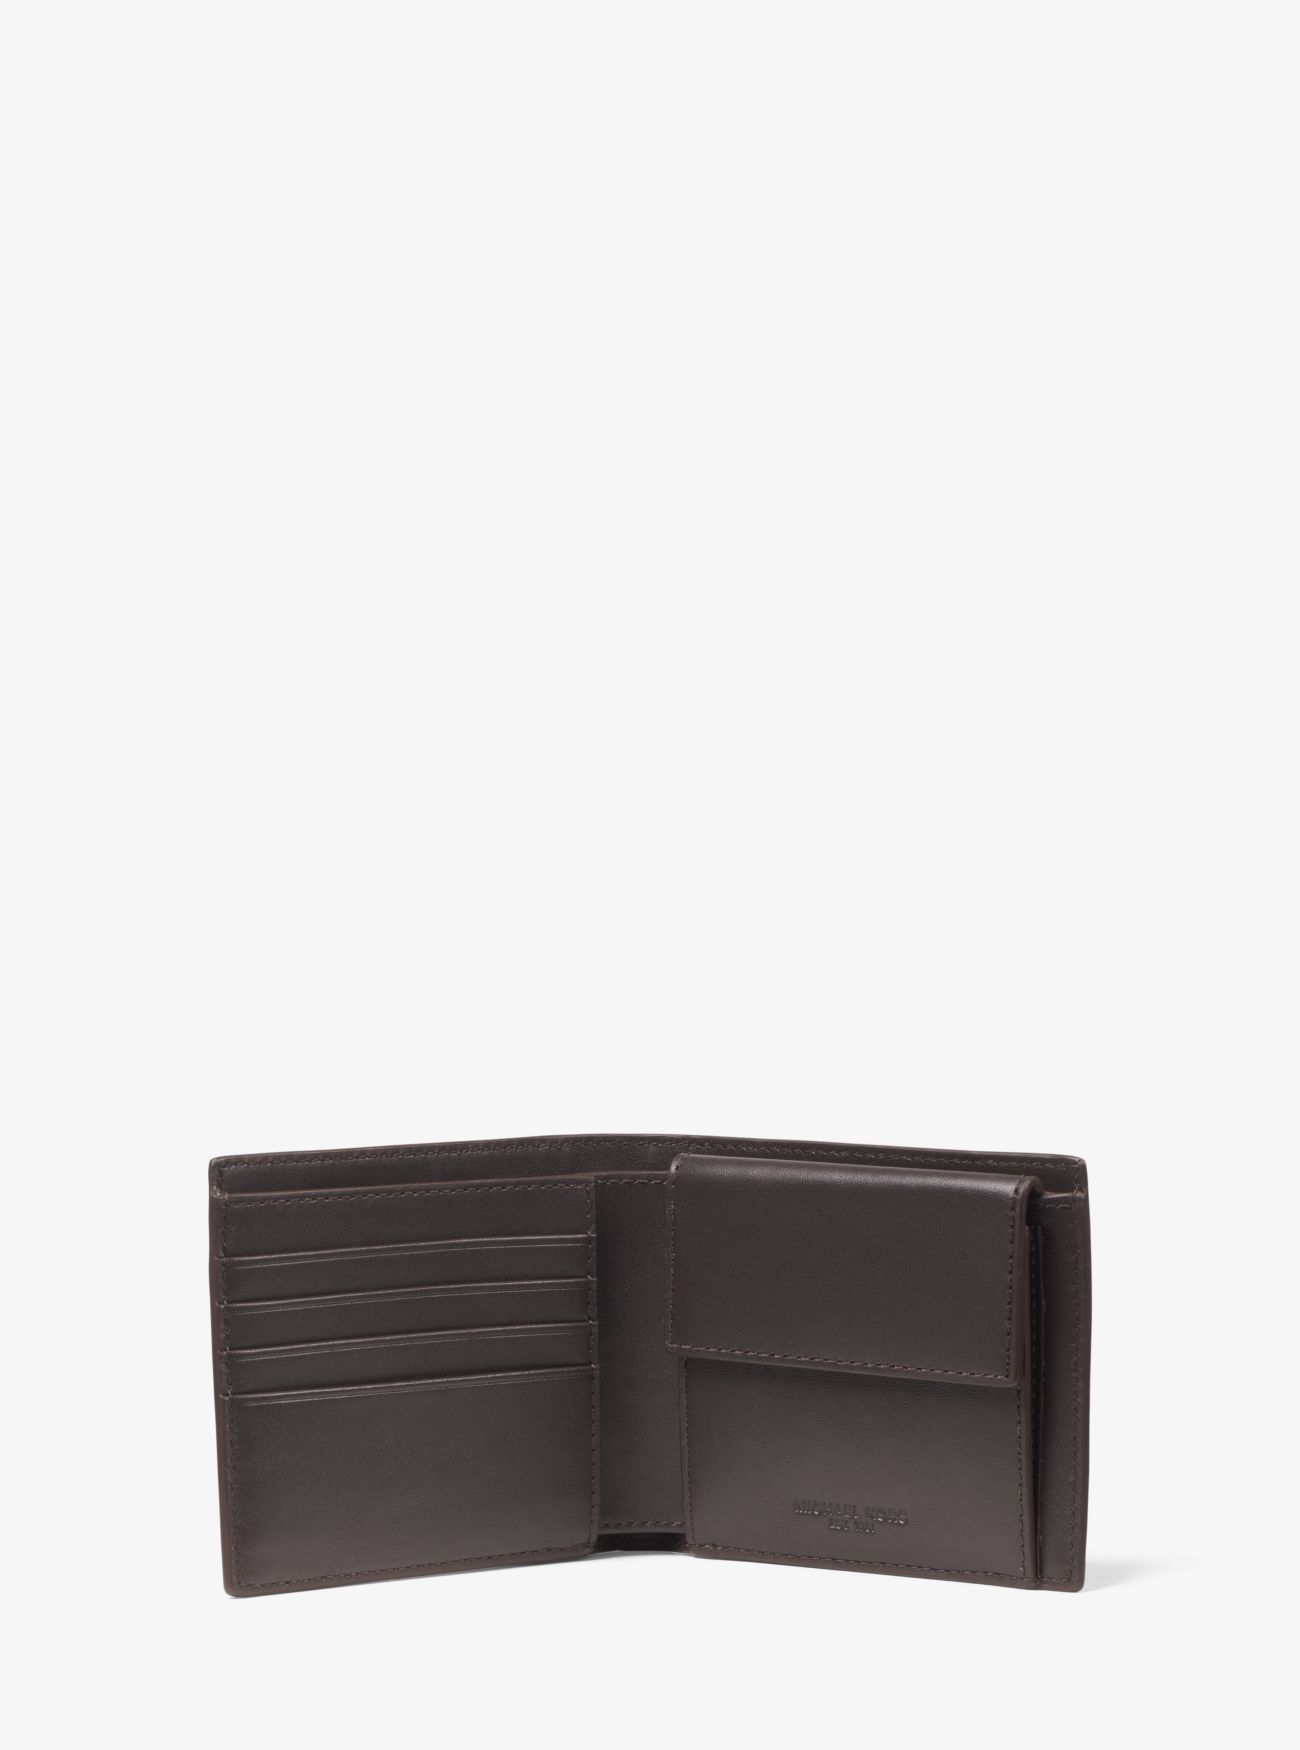 935a2eb82988 Jet Set Logo Billfold Wallet With Coin Pocket